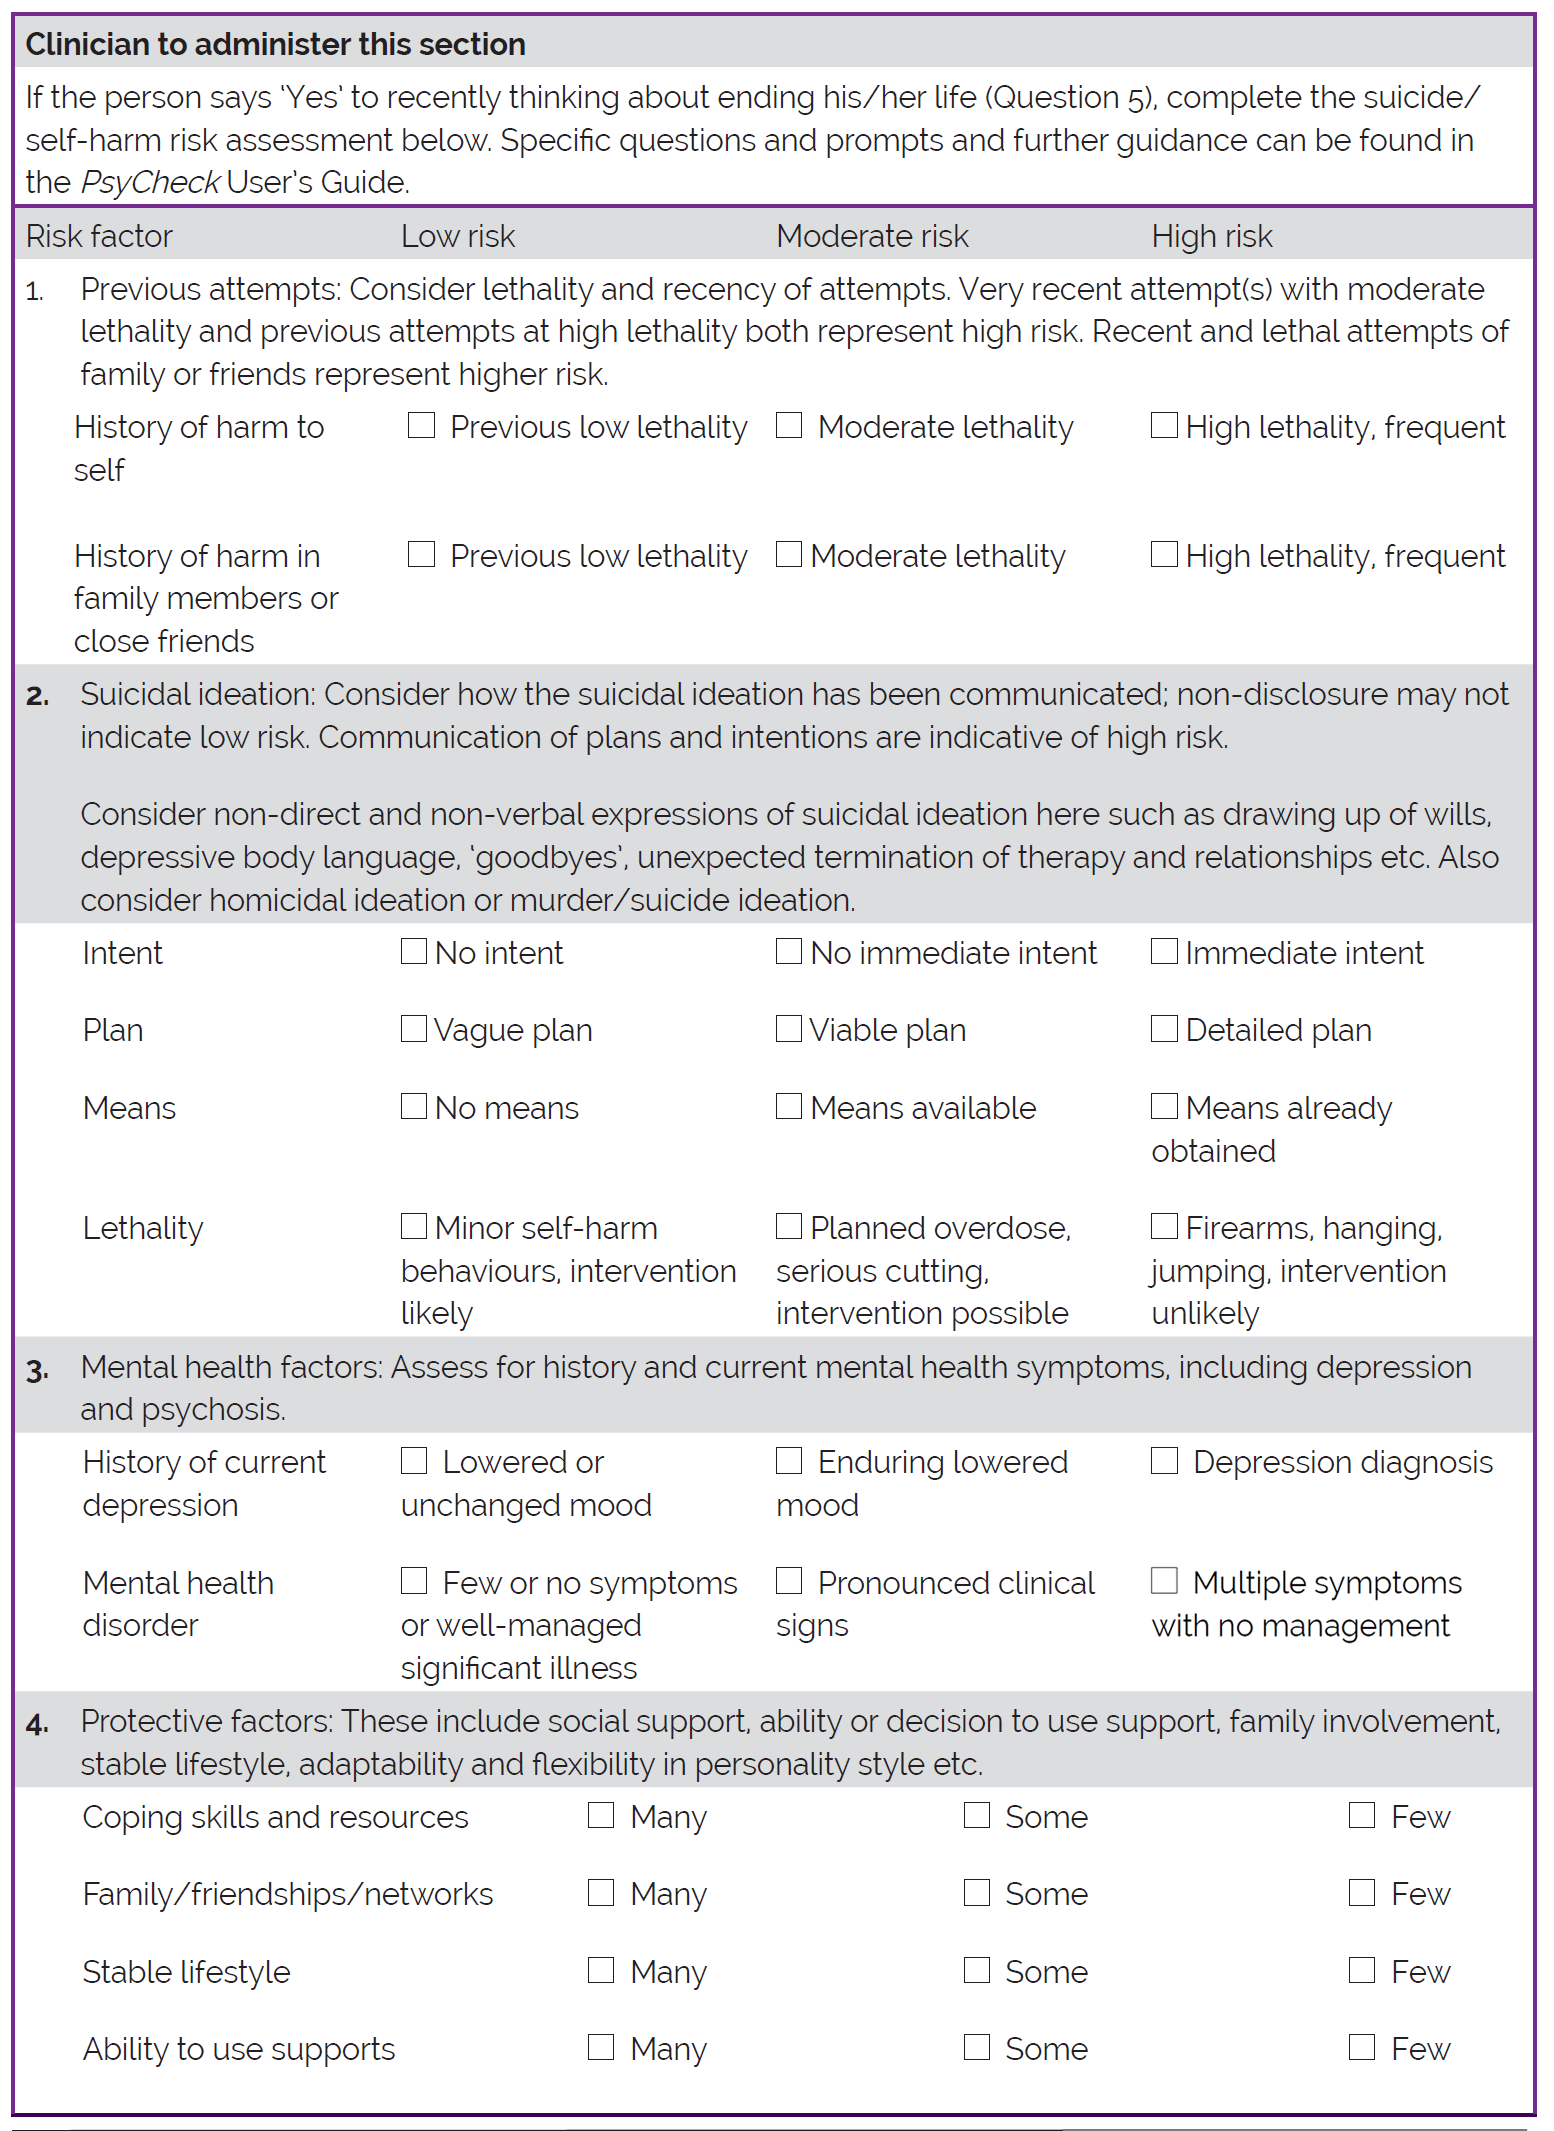 This Section Provides A Form For An Psycheck Risk Assessment